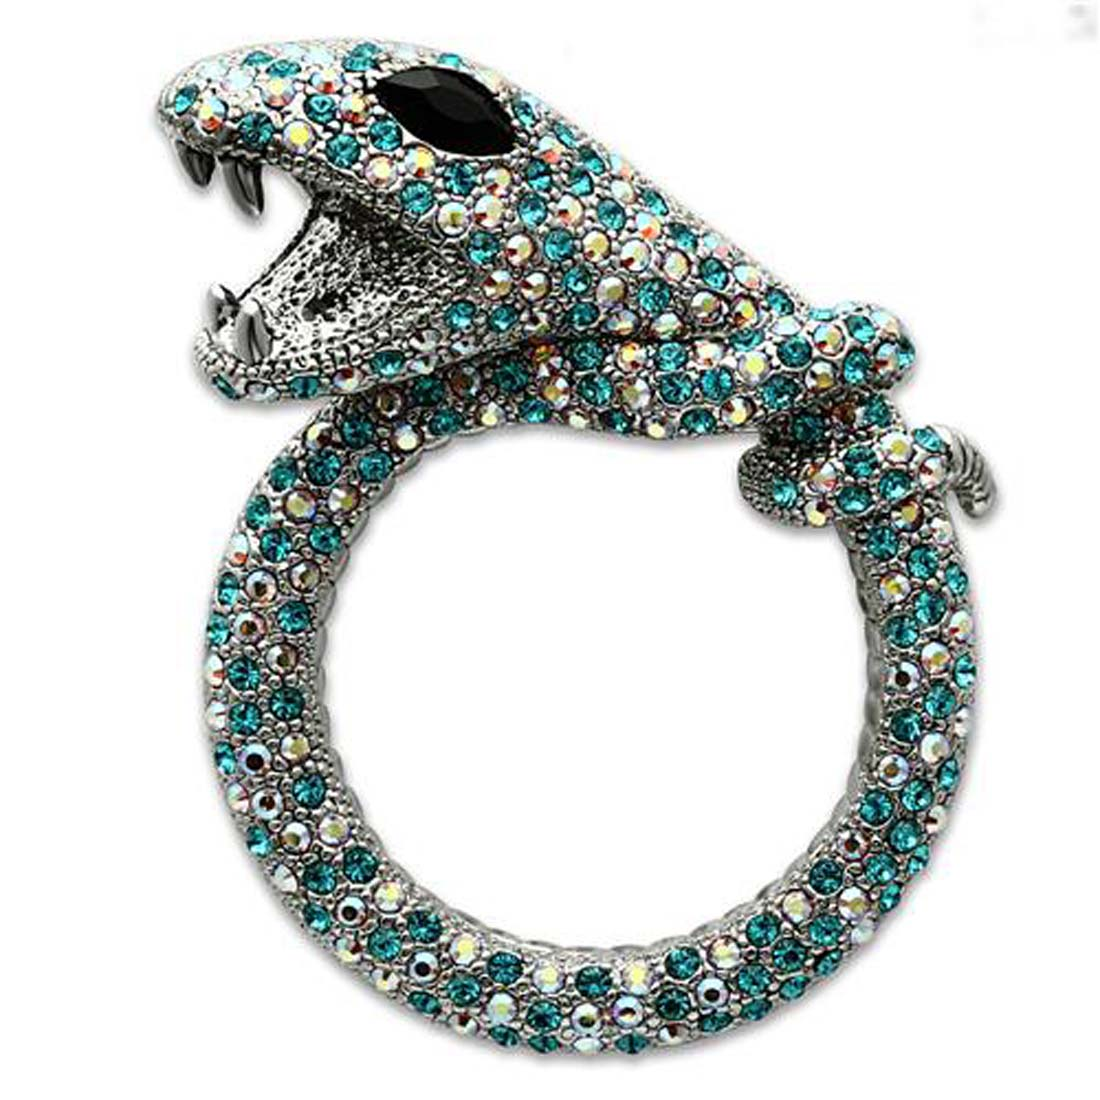 Dazzling Silver-tone Snake Pin Brooch with Multi-color Crystals by Crazy4Bling.